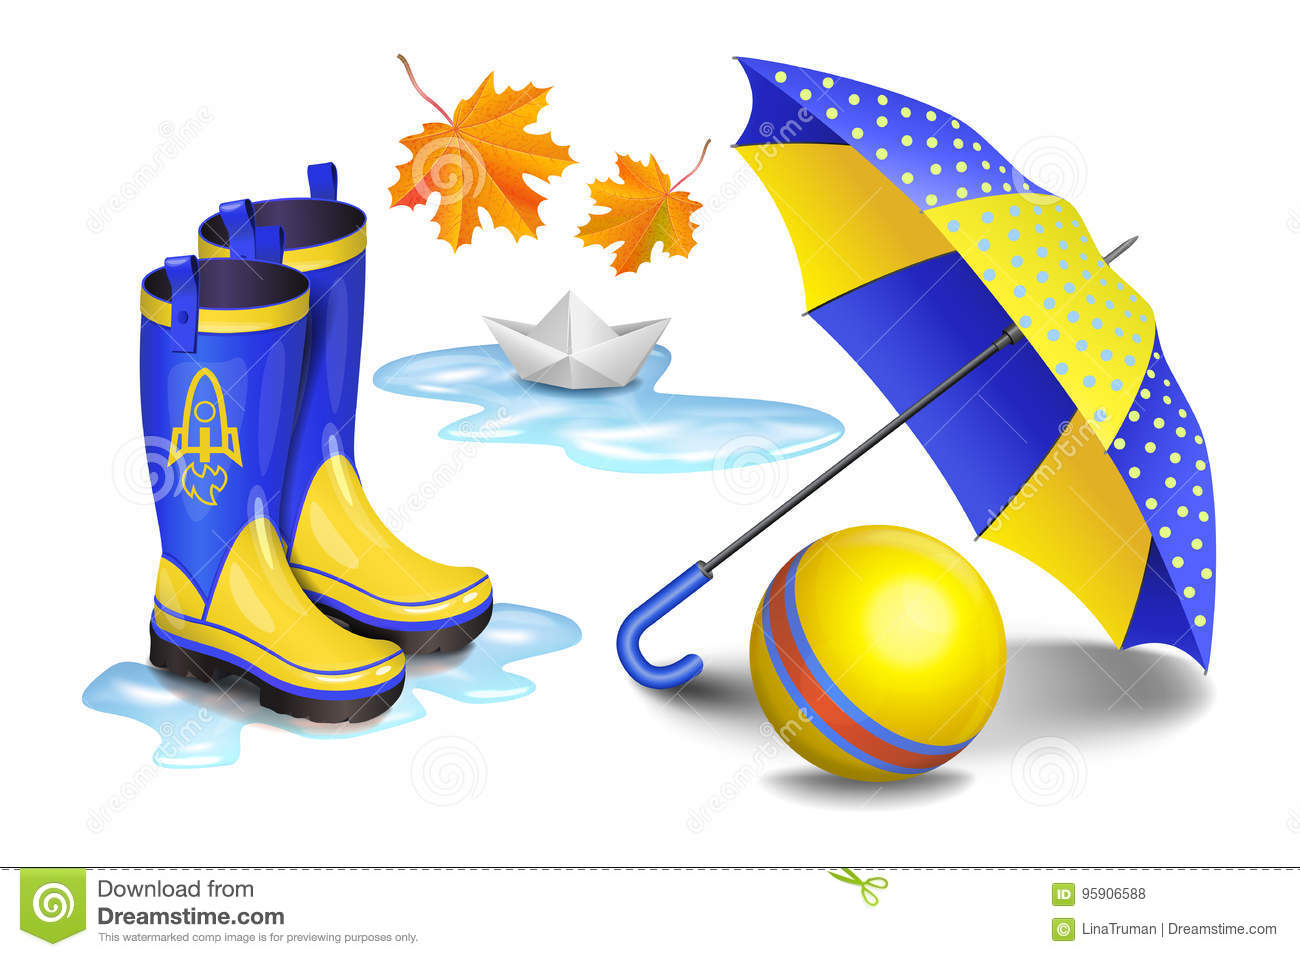 Blue-yellow gumboots,childrens umbrella, toy ball, falling leaves